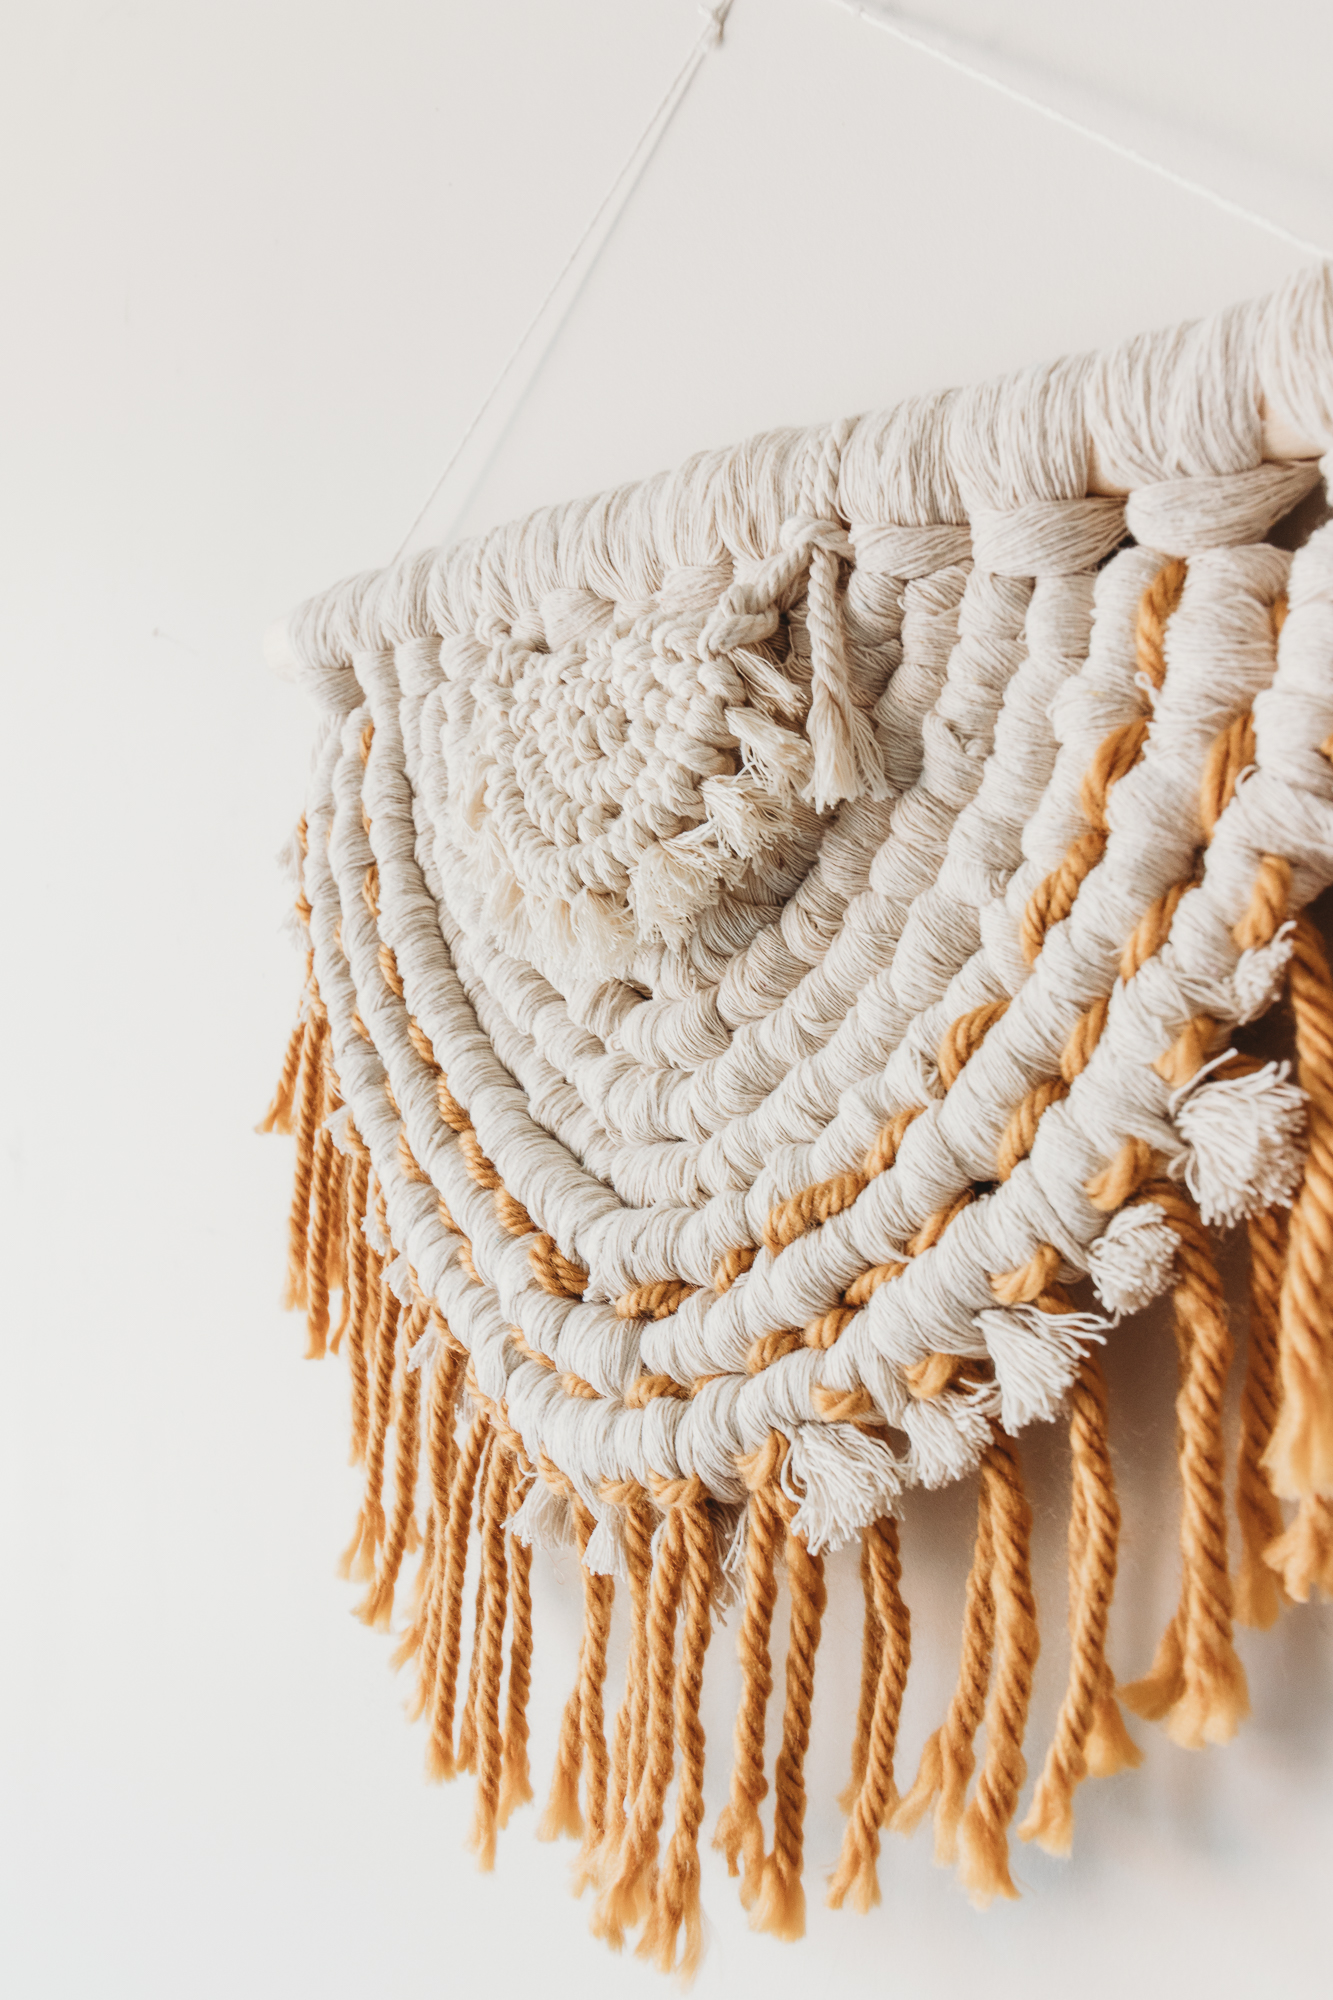 Half Circle Macrame Project Class Video Instructions And Pattern